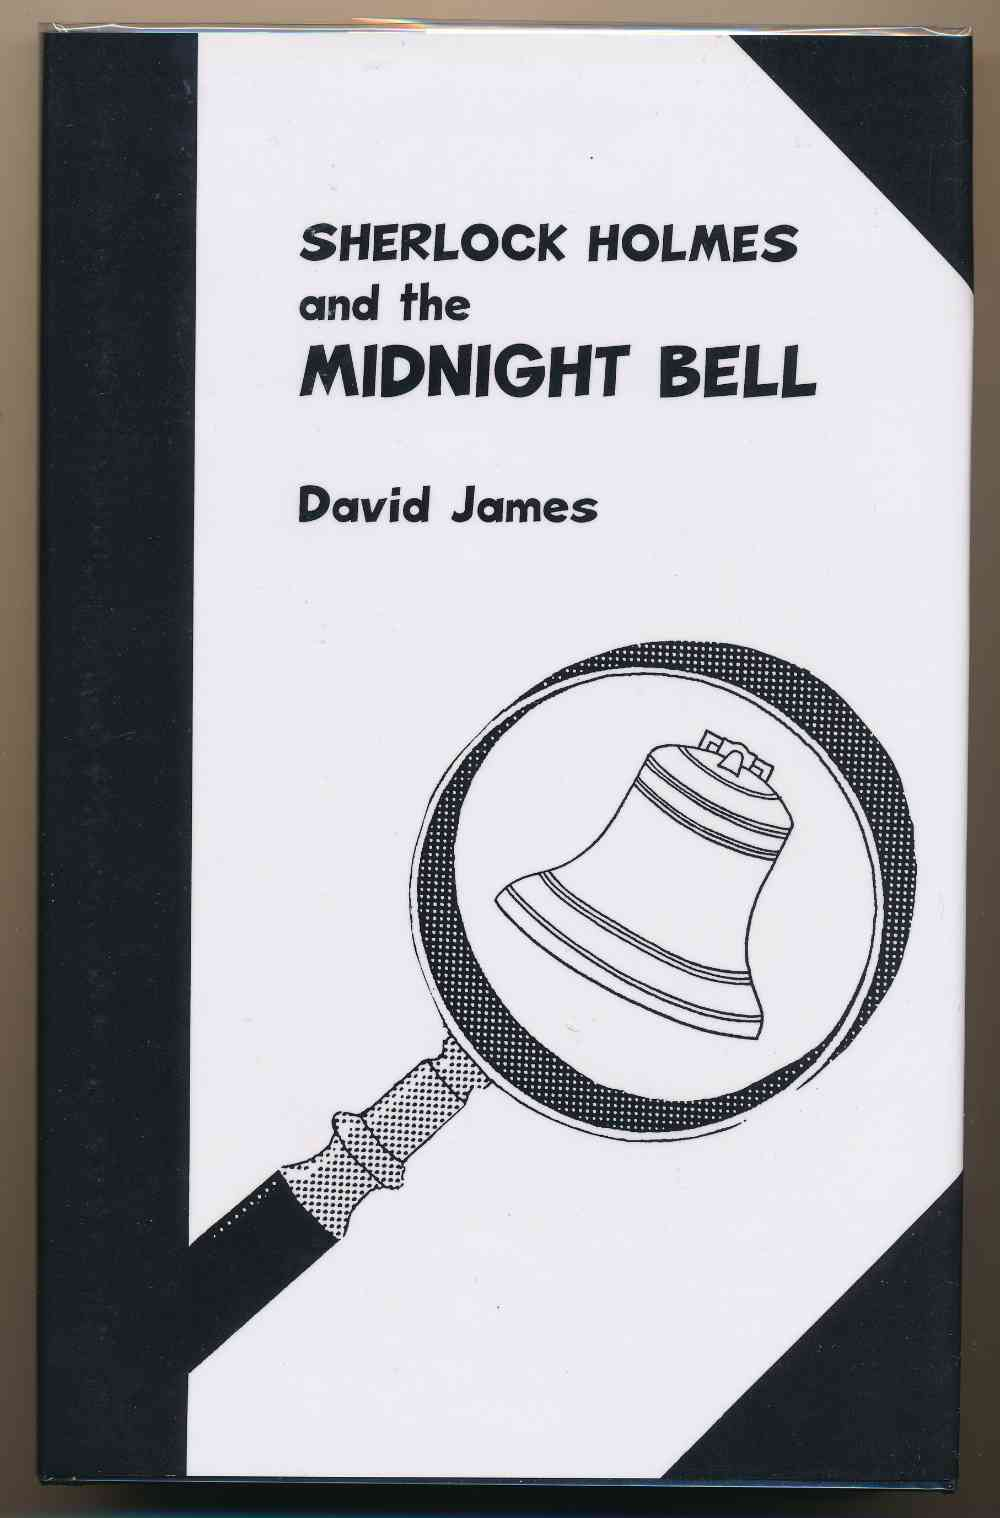 Sherlock Holmes and the midnight bell